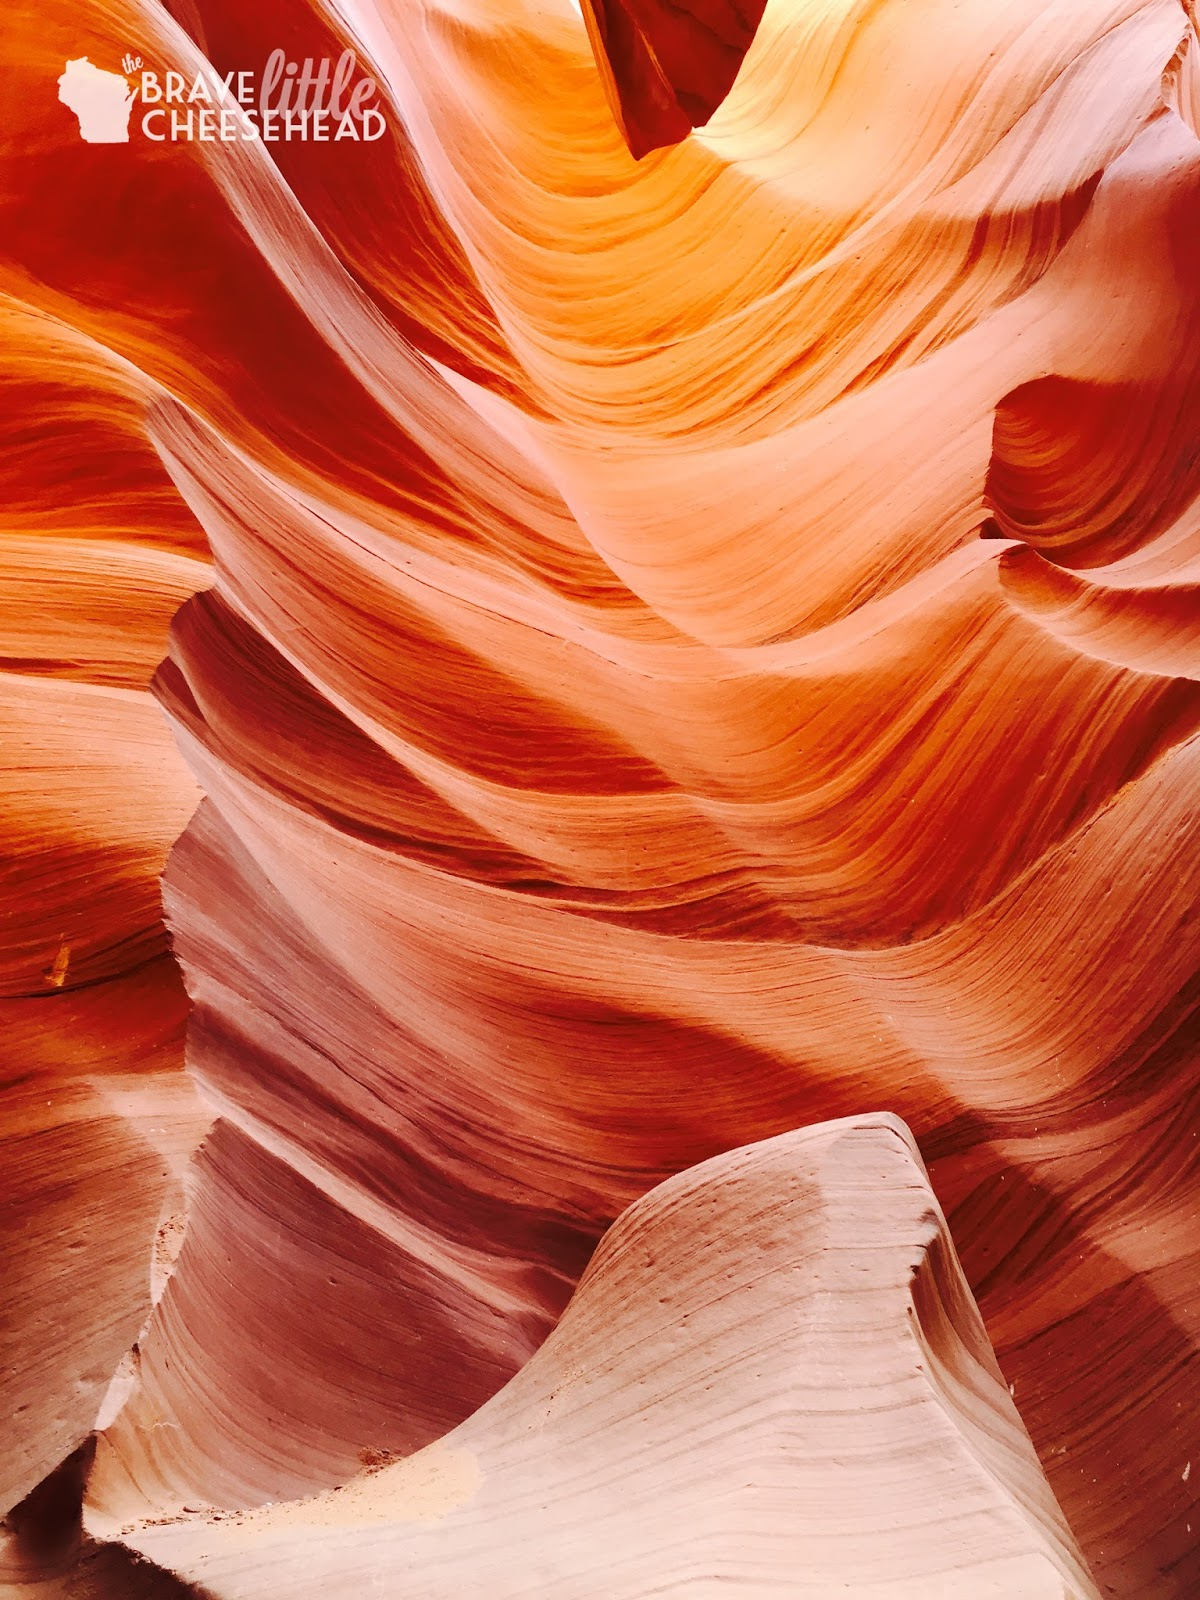 iPhone Photography Tips for the Antelope Canyons | The Brave Little Cheesehead